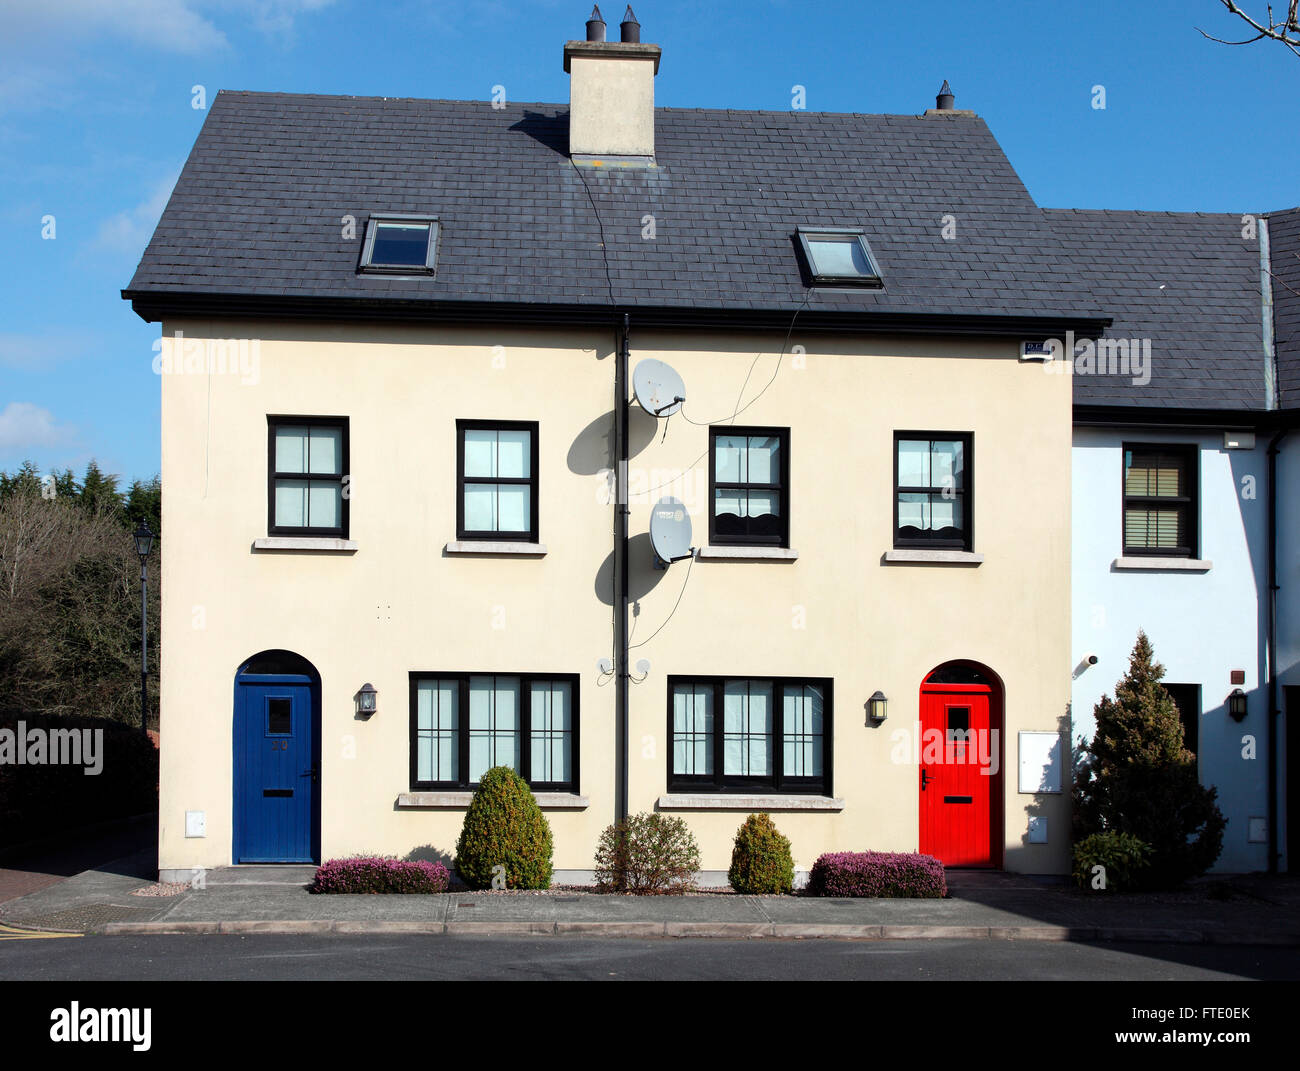 Townhouse in market town of Carrickmacross, County Monaghan, Ireland - Stock Image